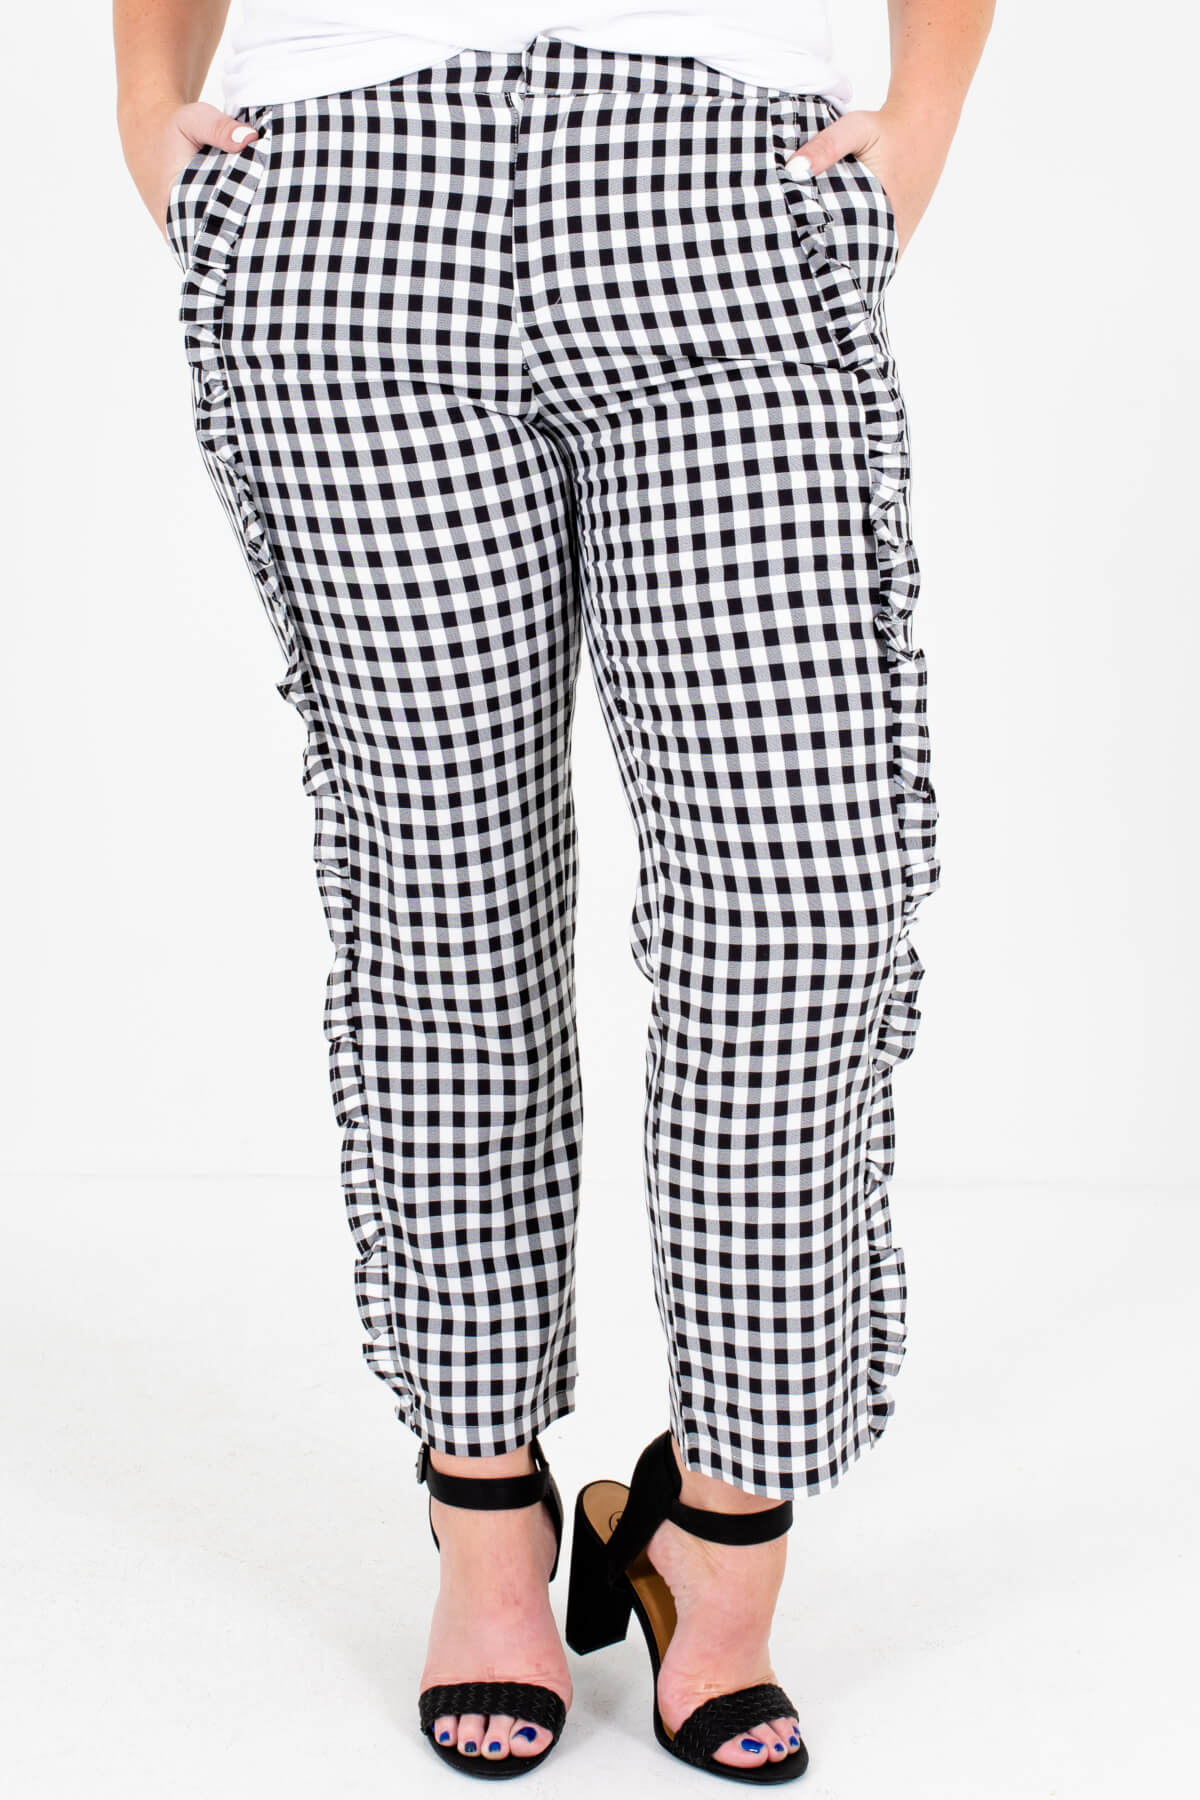 Black White Gingham Pants Plus Size Boutique Fashion for Women